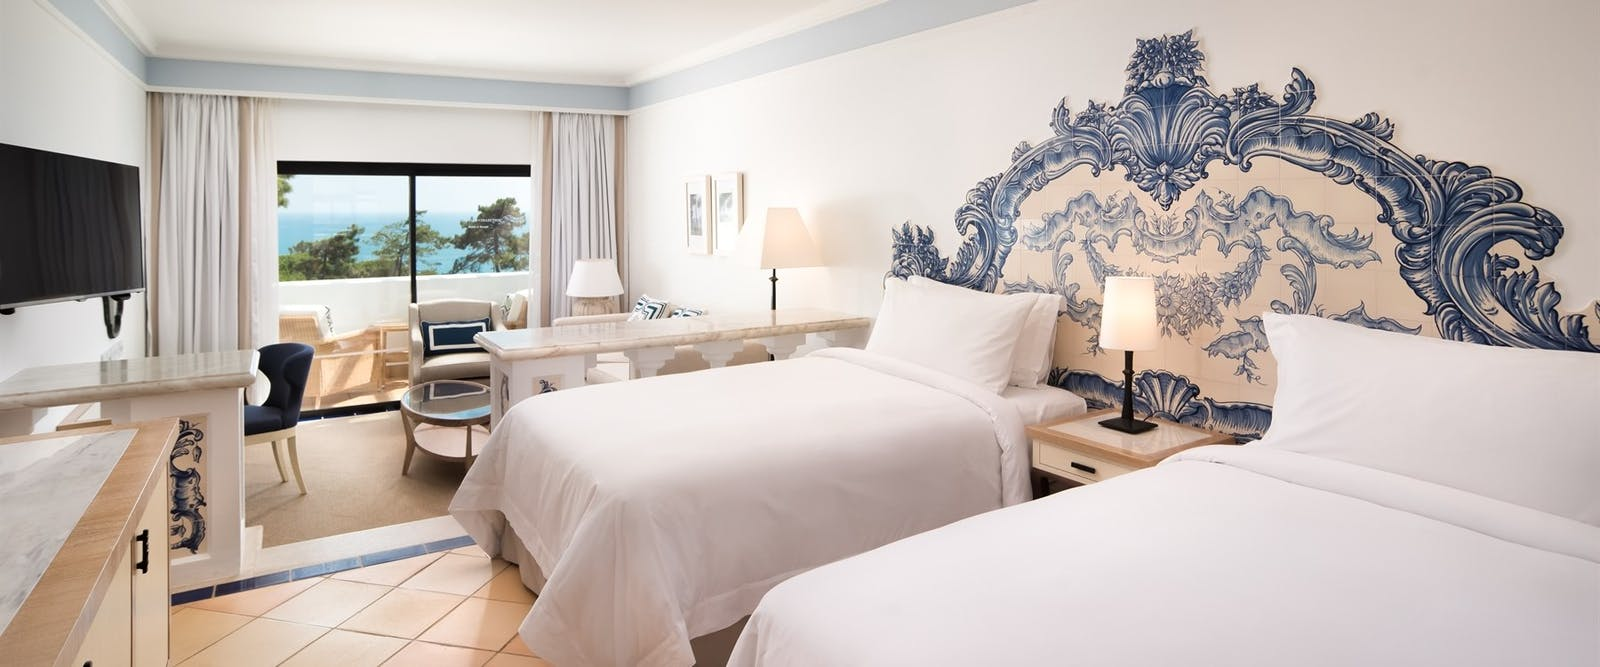 Bedroom, Pine Cliffs, A Luxury Collection Resort, Algarve